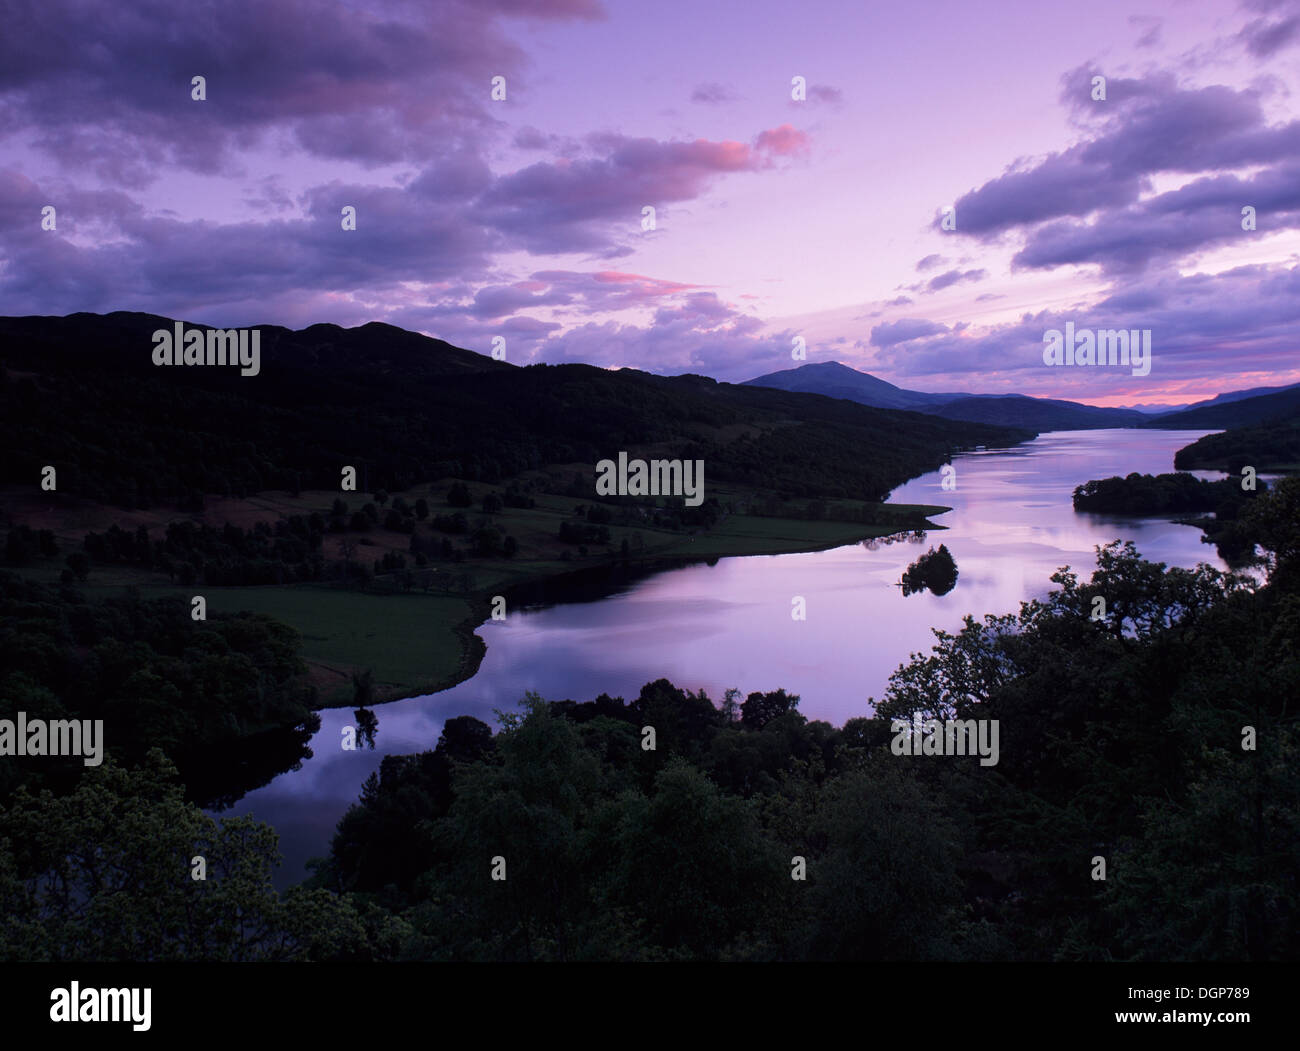 View from Queen's View on Loch Tummel, Tayside Region, Scotland, United Kingdom, Europe - Stock Image